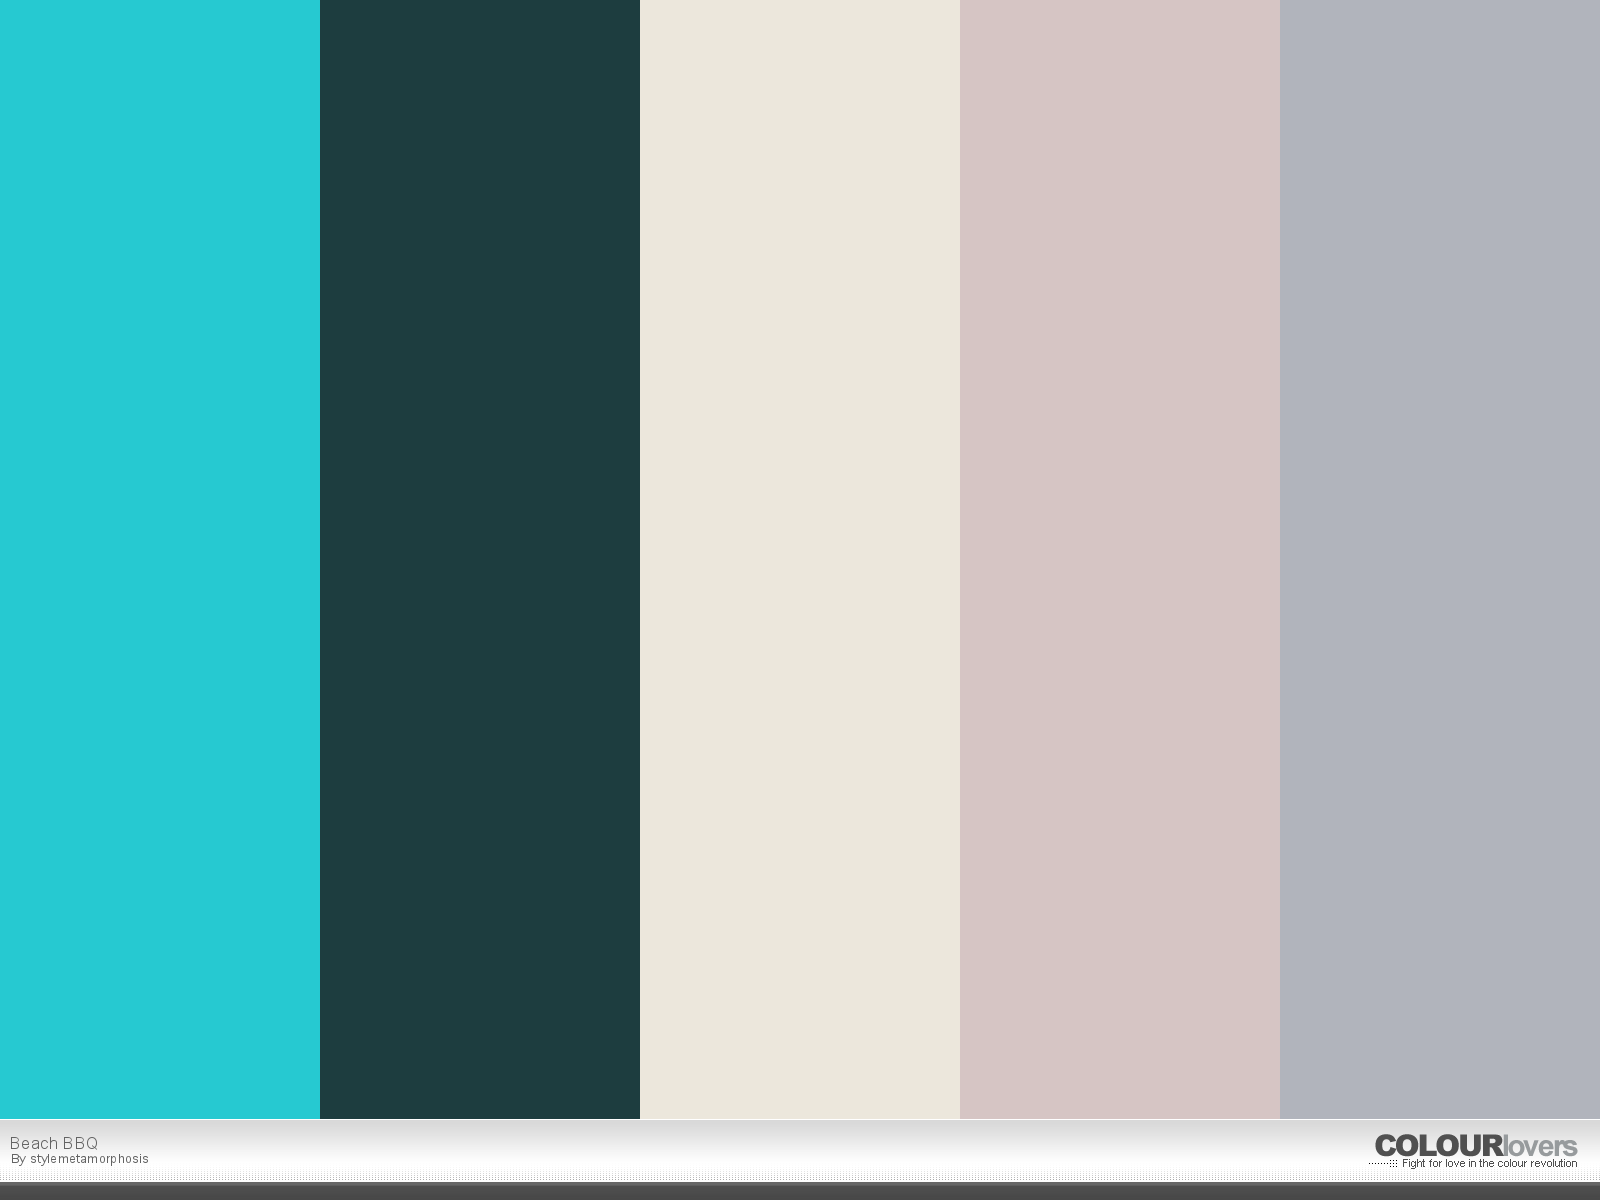 COLOURlovers palette. Beach BBQ by Stylemetamorphosis